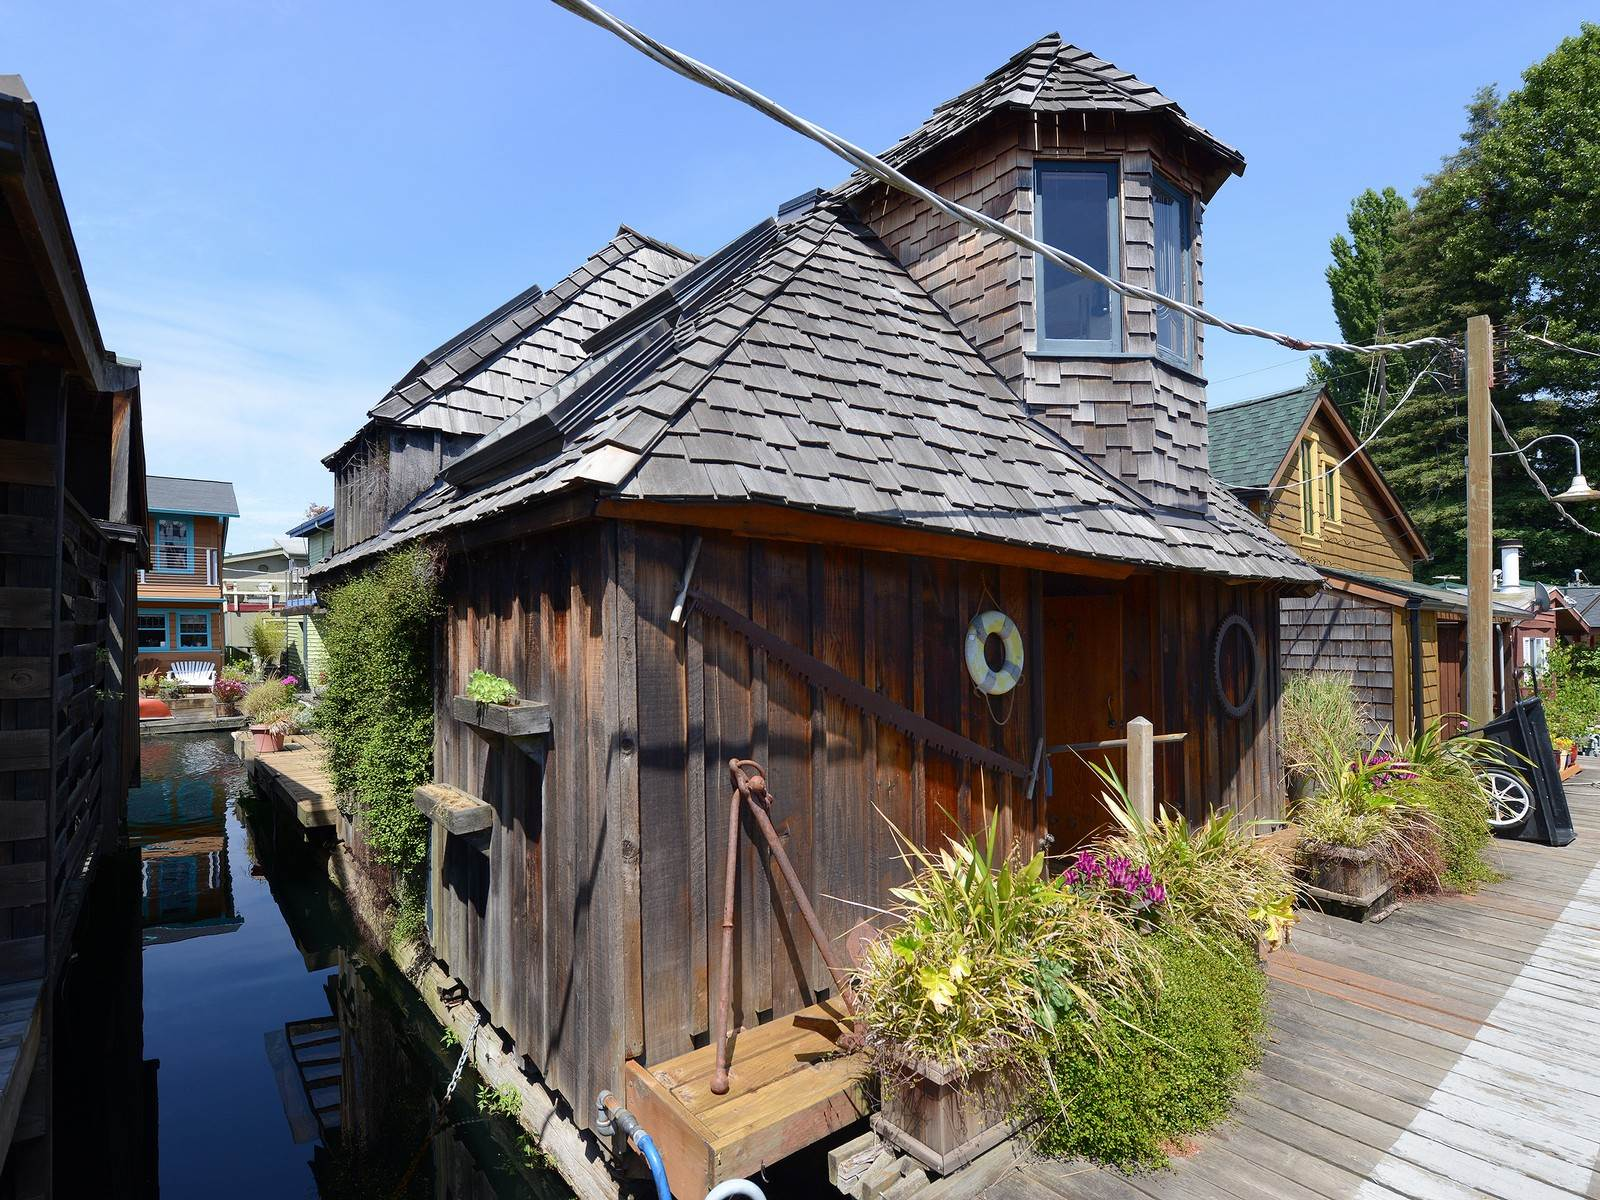 The Hobbit Houseboat